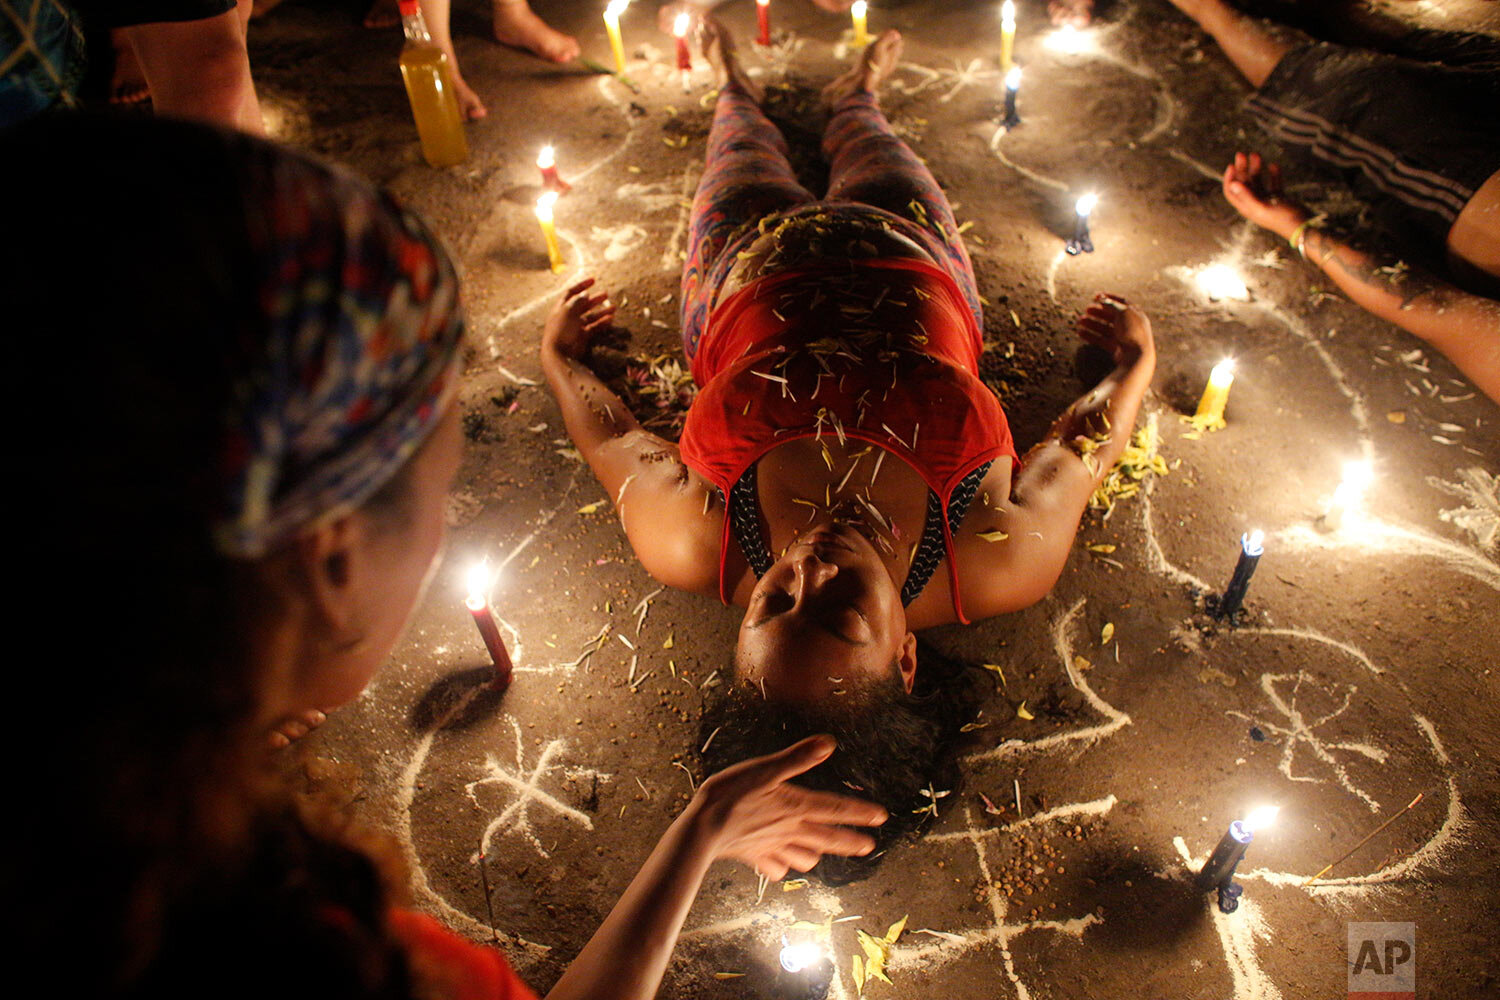 In this photo taken Oct. 11, 2019, a woman surrounded by candles and designs drawn on the ground with white powder lies with her eyes closed during a spiritual ceremony on Sorte Mountain where followers of indigenous goddess Maria Lionza gather annually in Venezuela's Yaracuy state. (AP Photo/Ariana Cubillos)